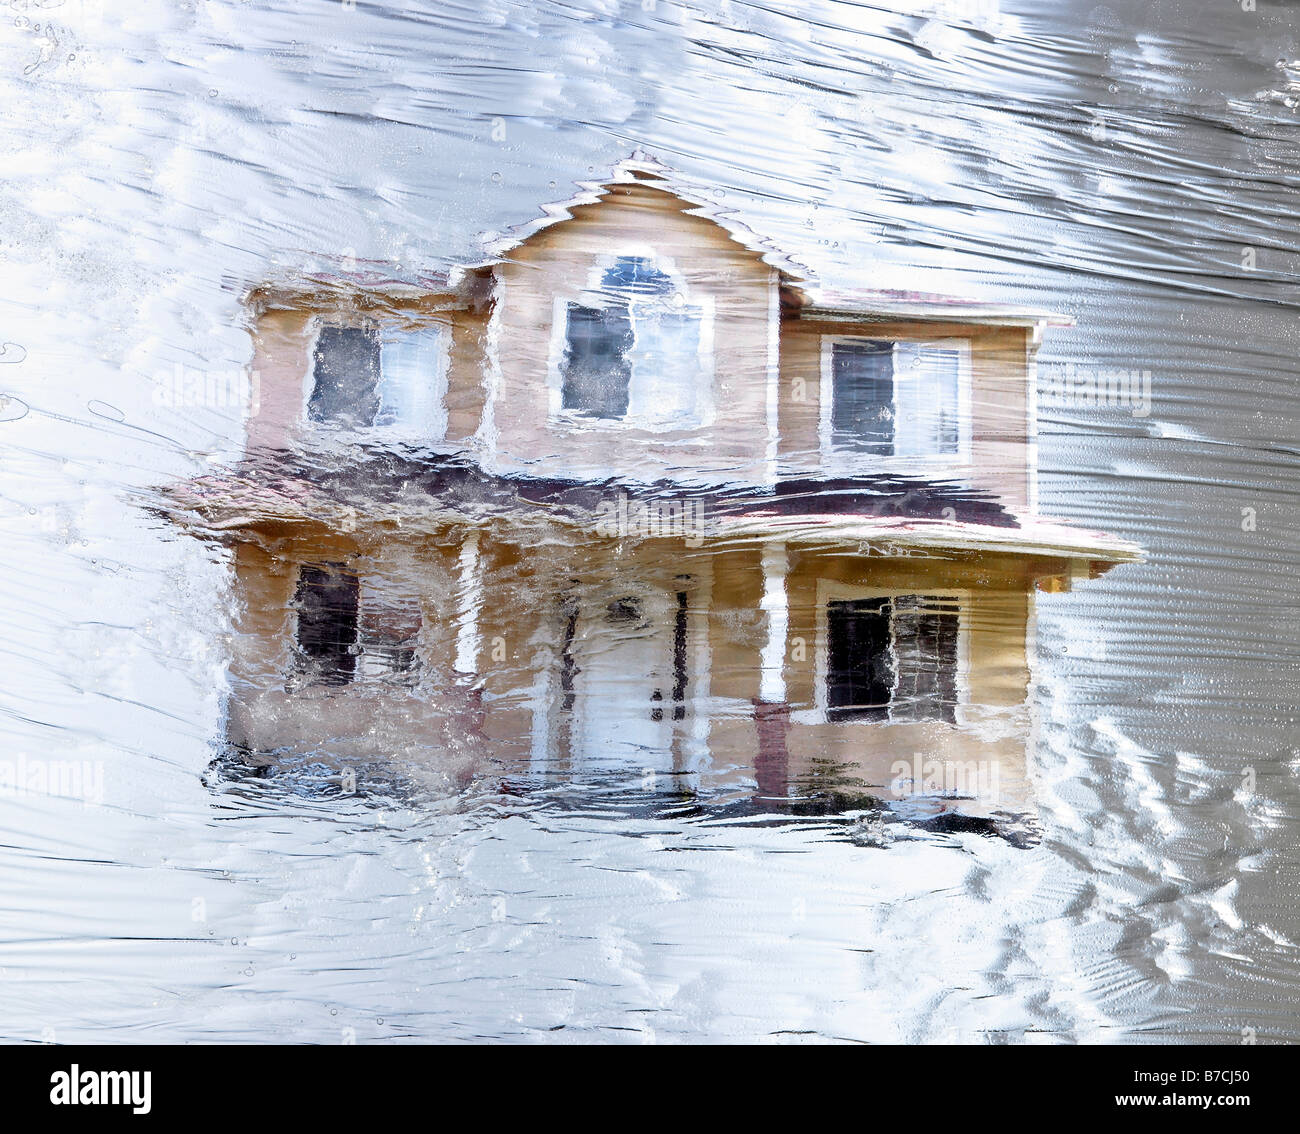 The sale of Properties are frozen during the recession. - Stock Image